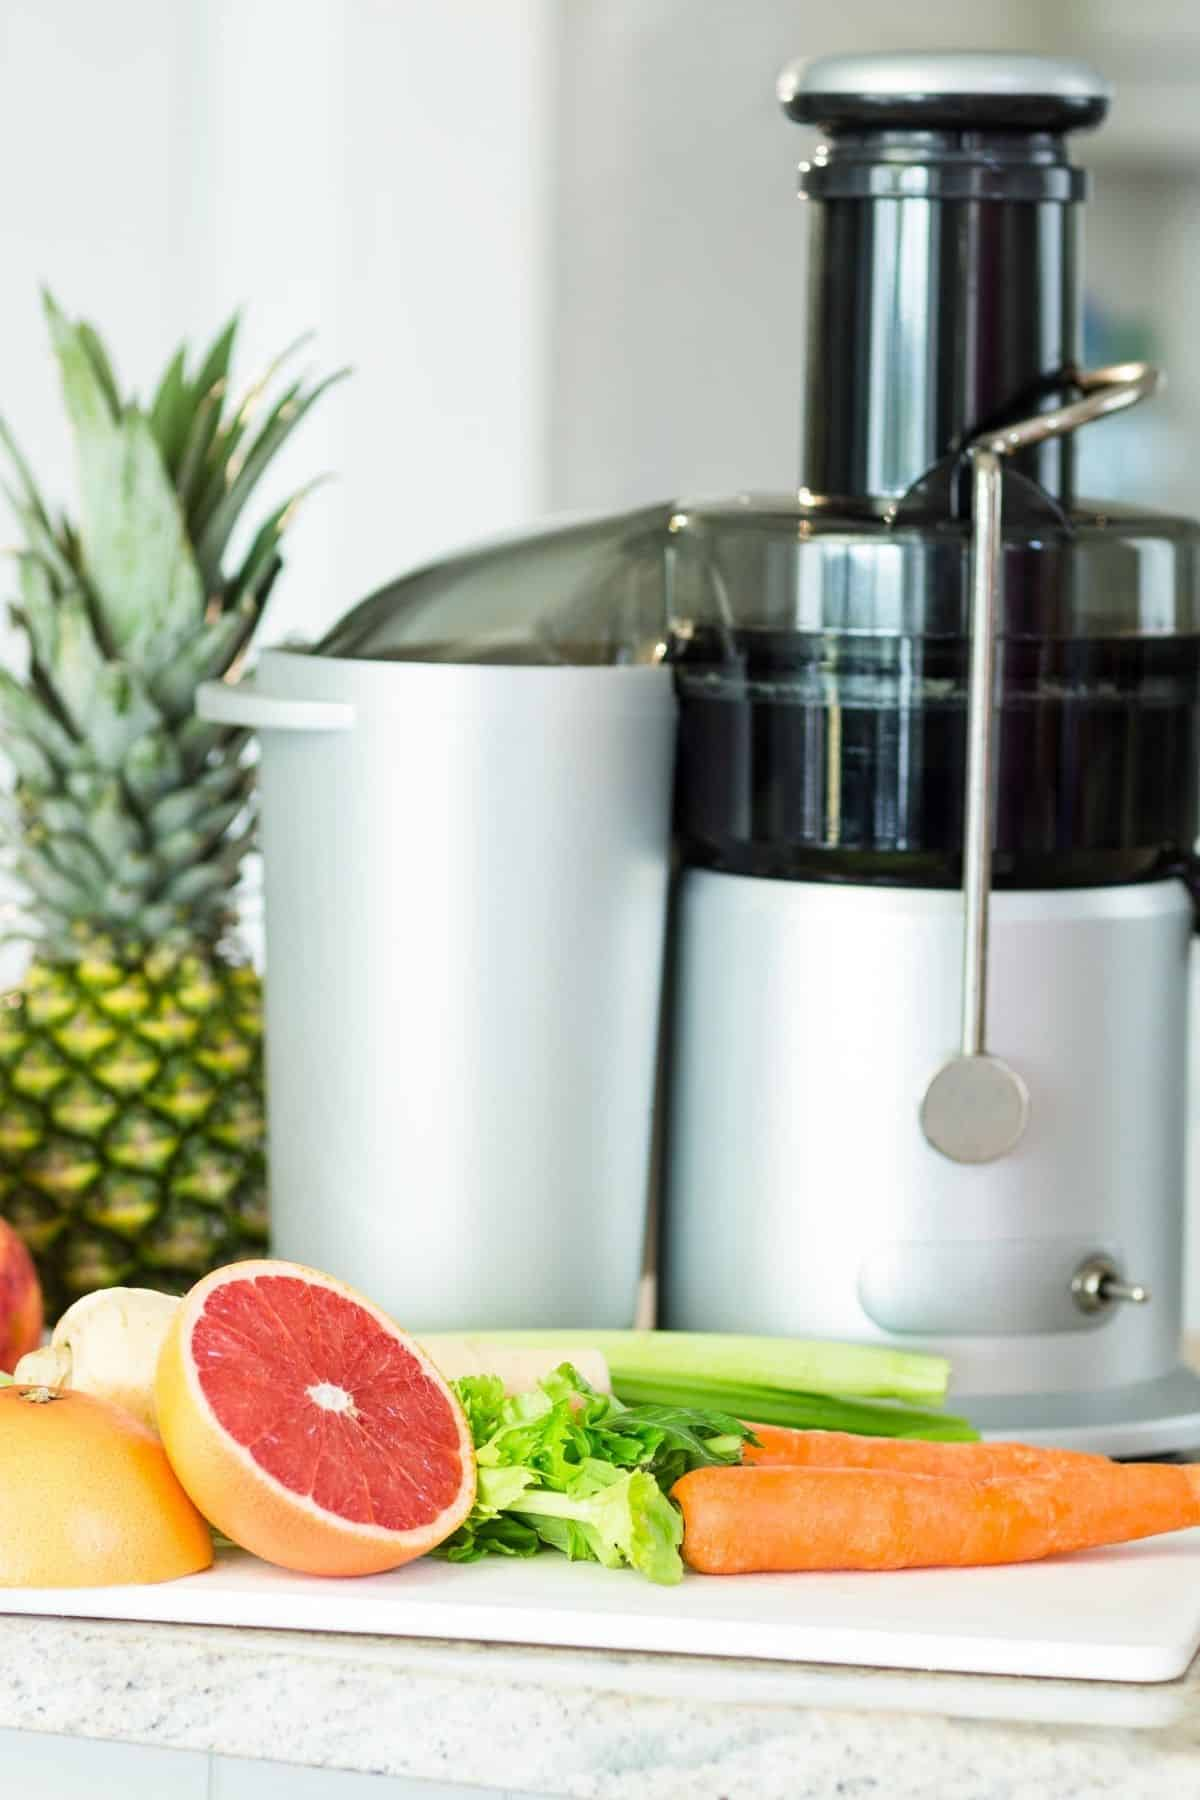 centrifugal juicer on a kitchen countertop